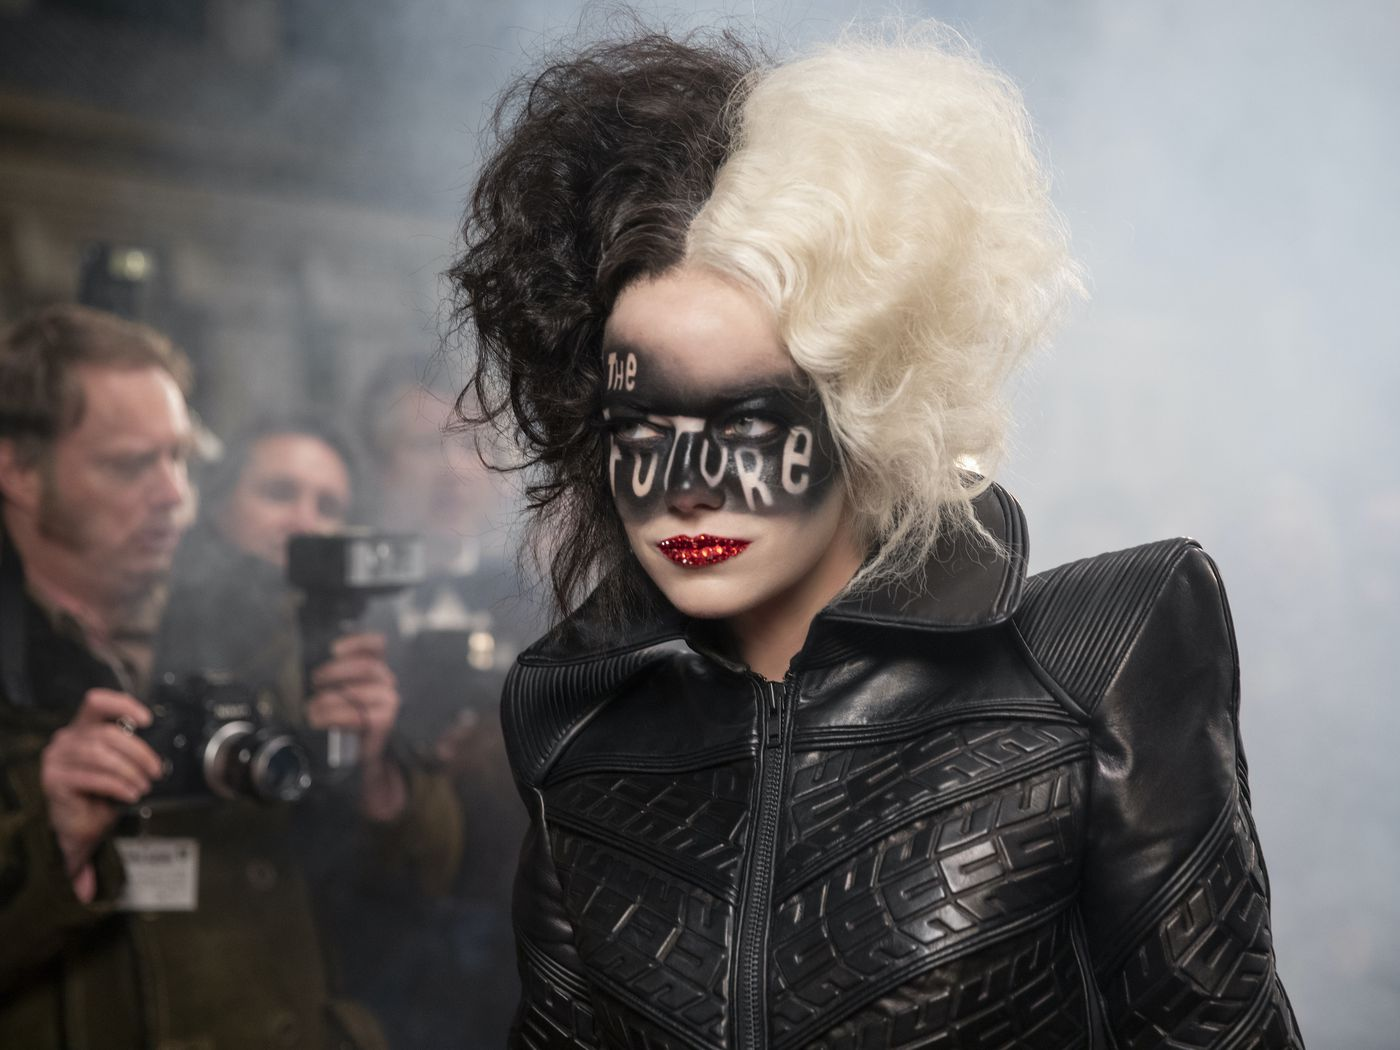 Cruella review: Get past how unnecessary this prequel is, and it's fun - Vox